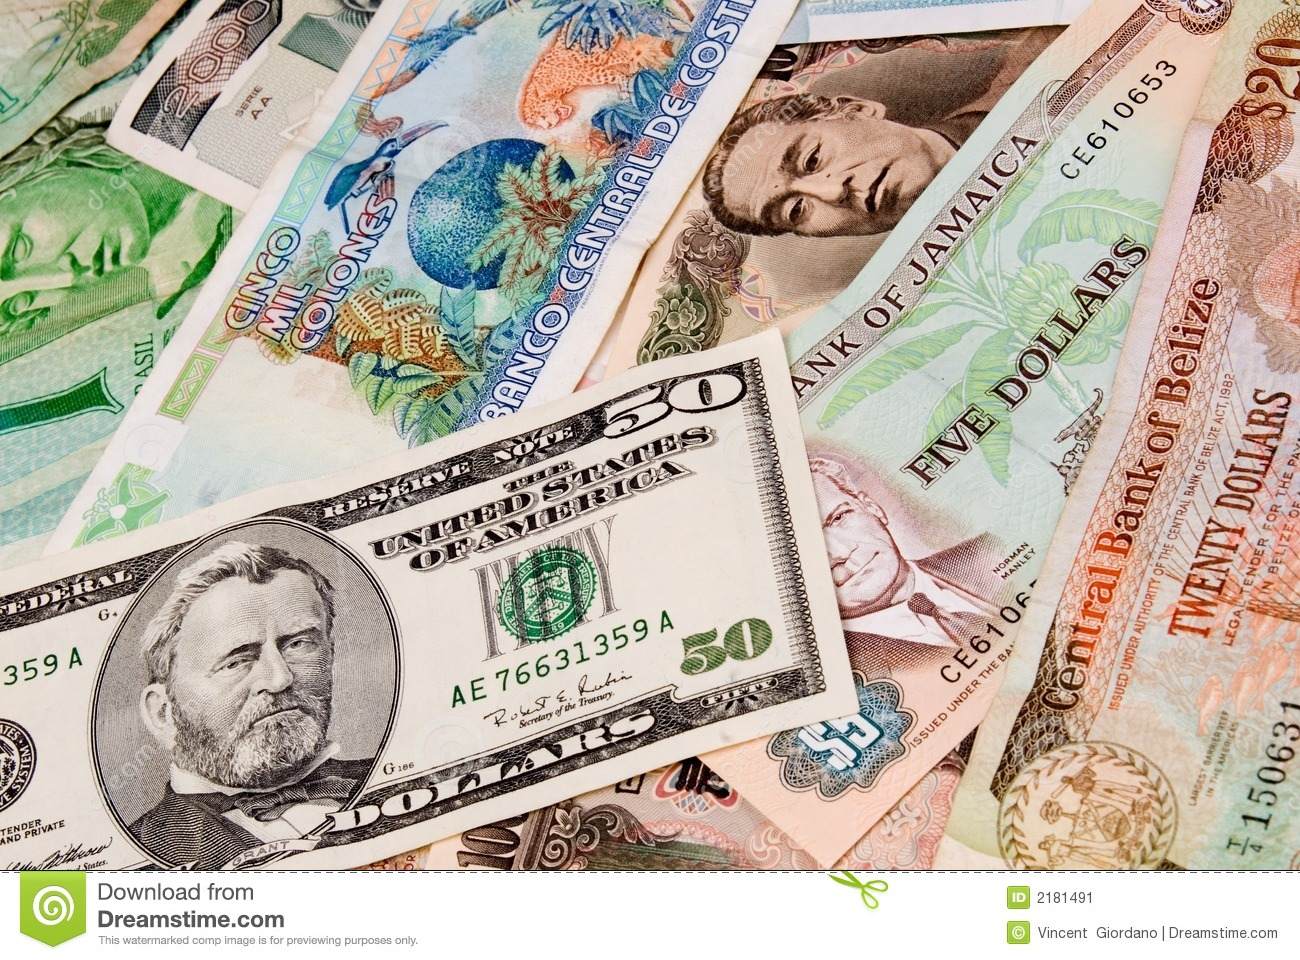 Foriegn currencies